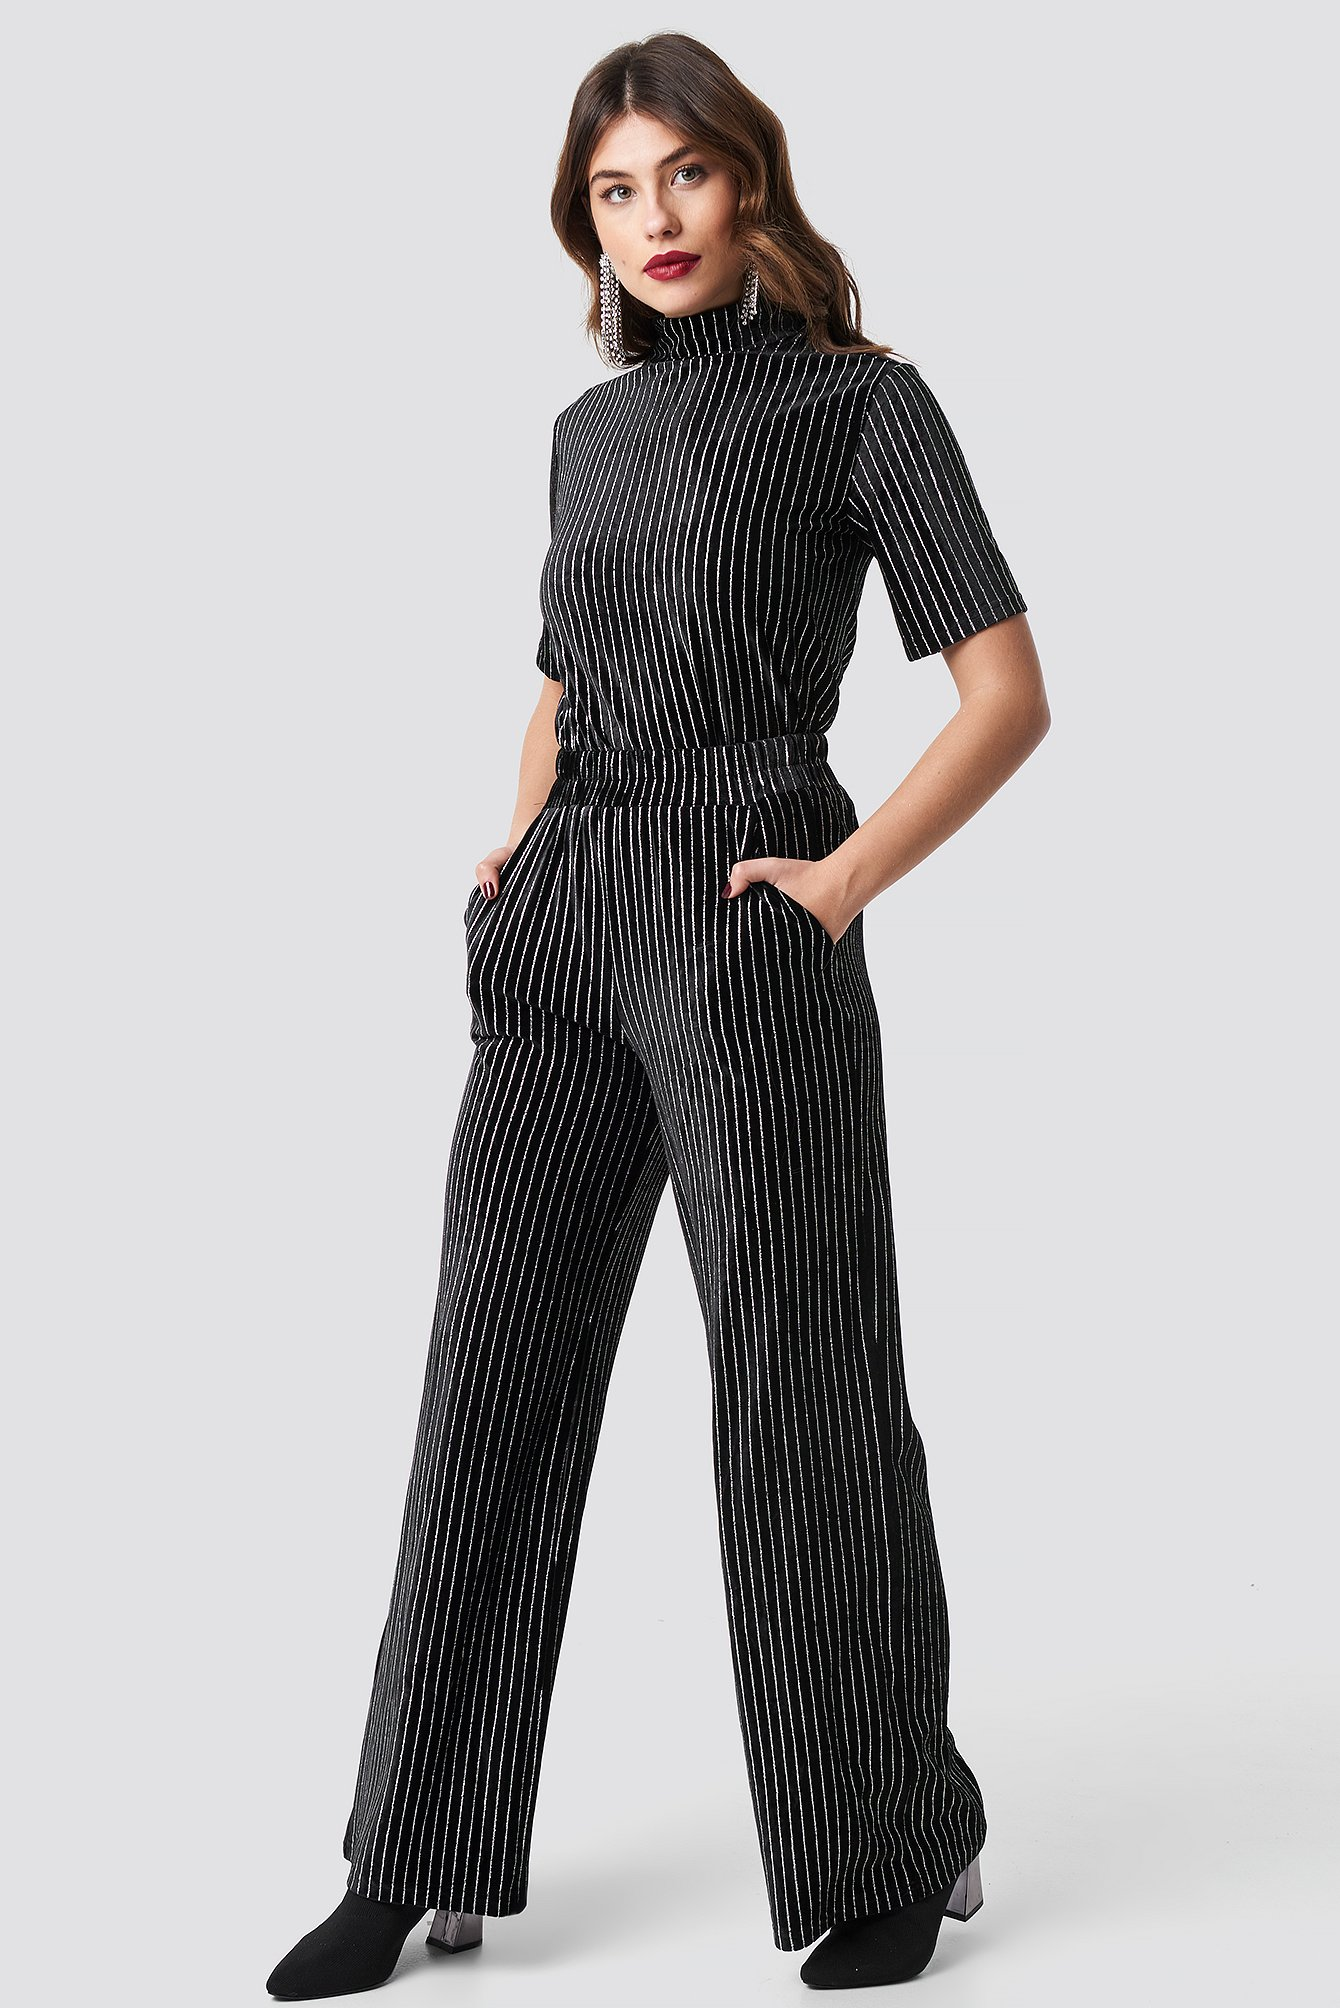 na-kd party -  Striped Glittery Velvet Pants - Black